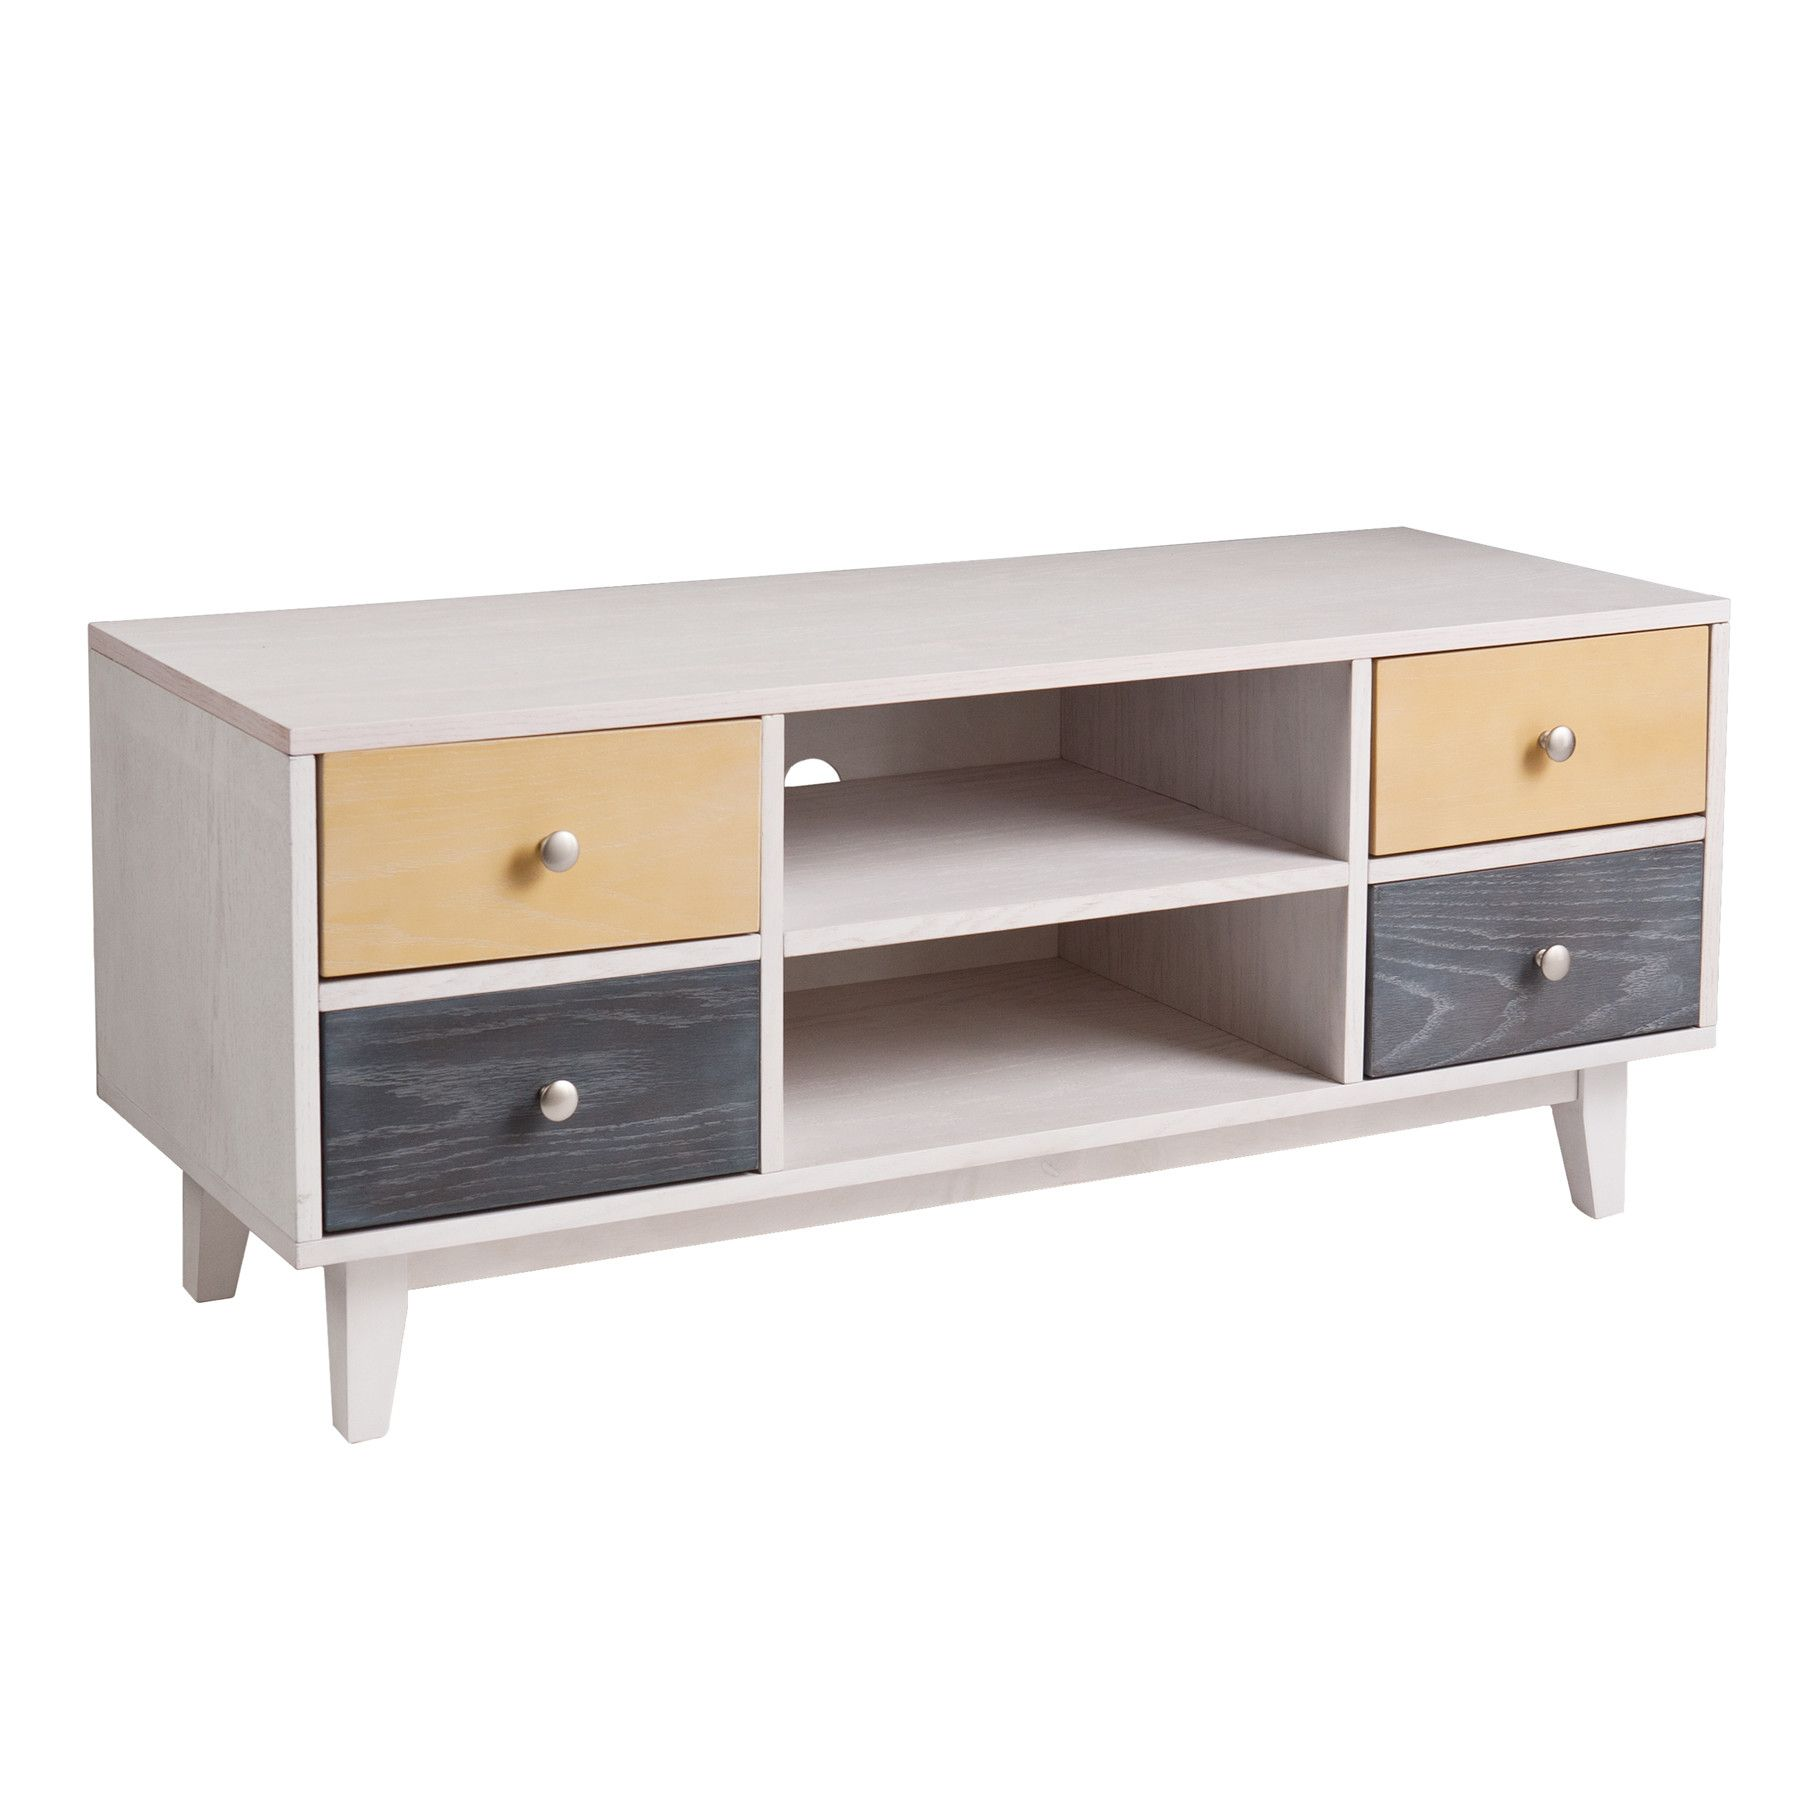 Lorraine TV Stand for TVs up to 60 inches Cool tv stands